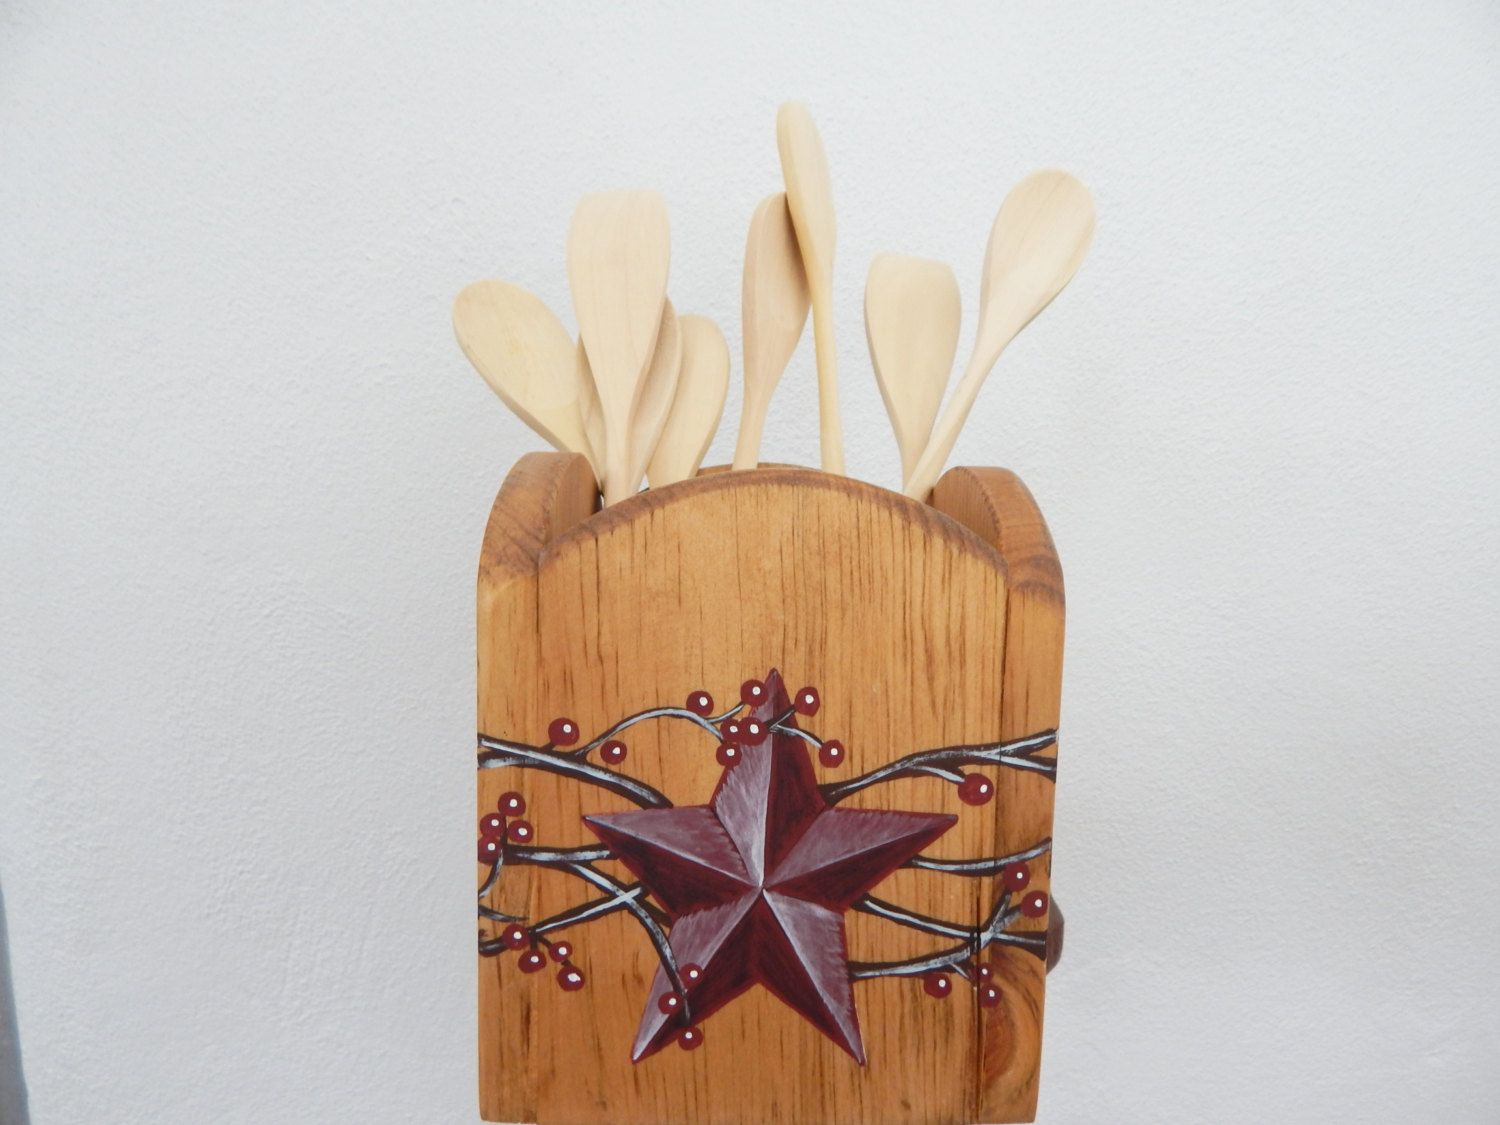 Kitchen Utensil Holder, Wooden Utensil Holder, Holder For Utensils,  Primitive Decor,primitive